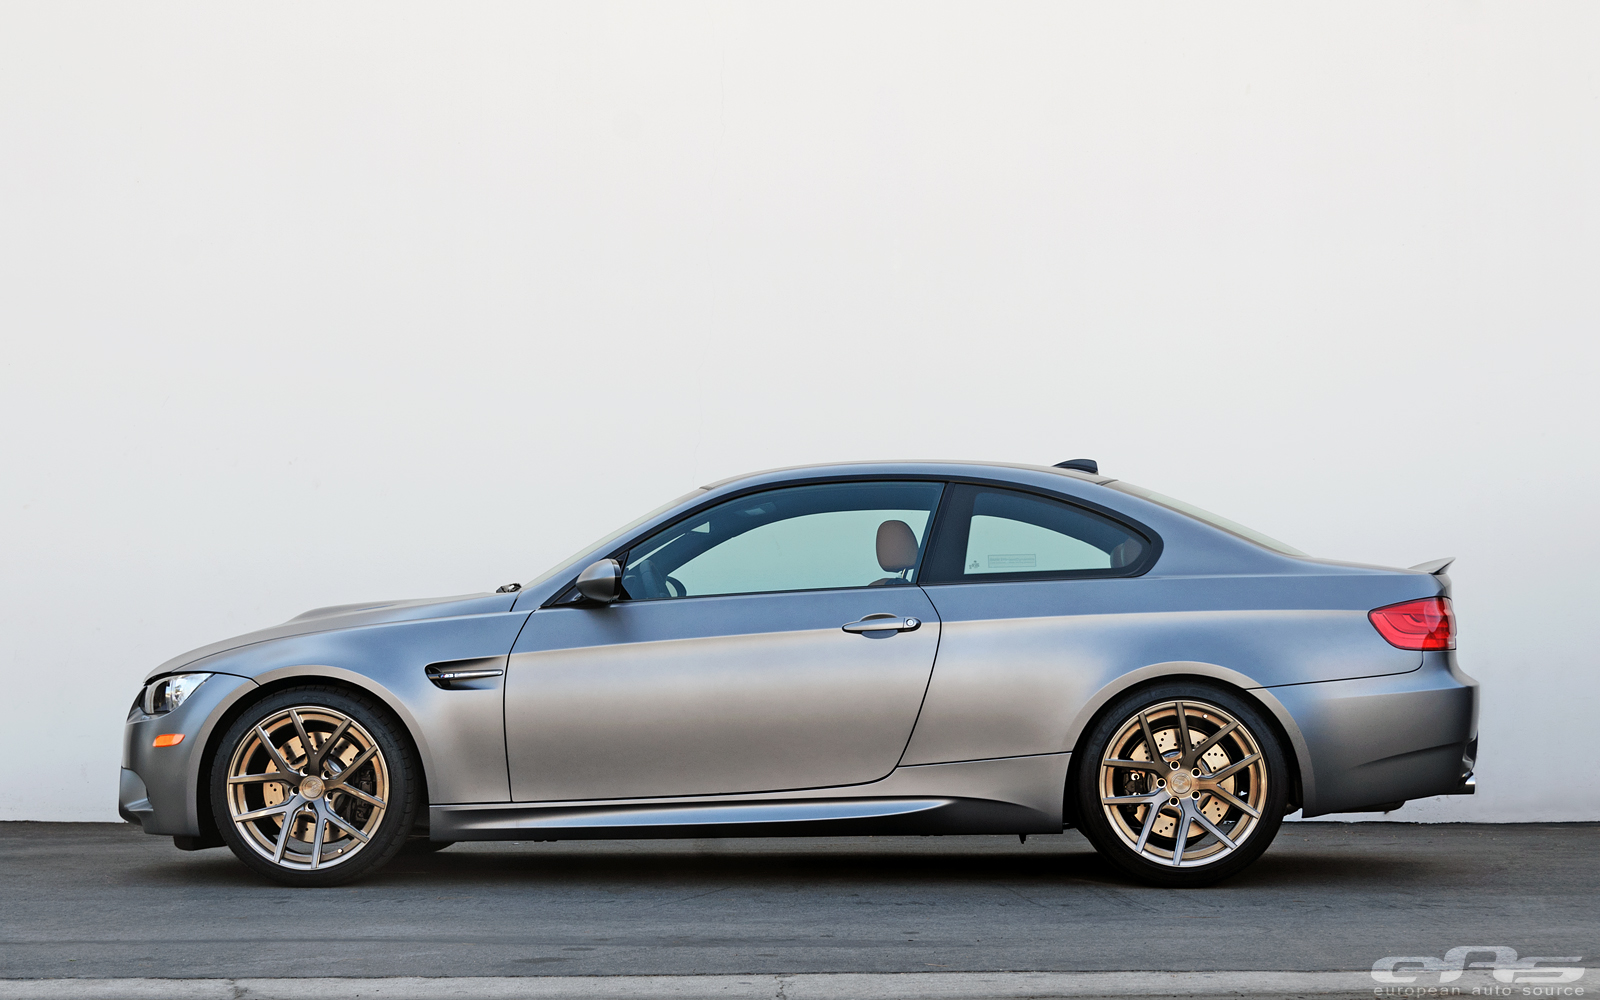 Frozen Gray Amp Rust Brown E92 M3 Bmw Performance Parts